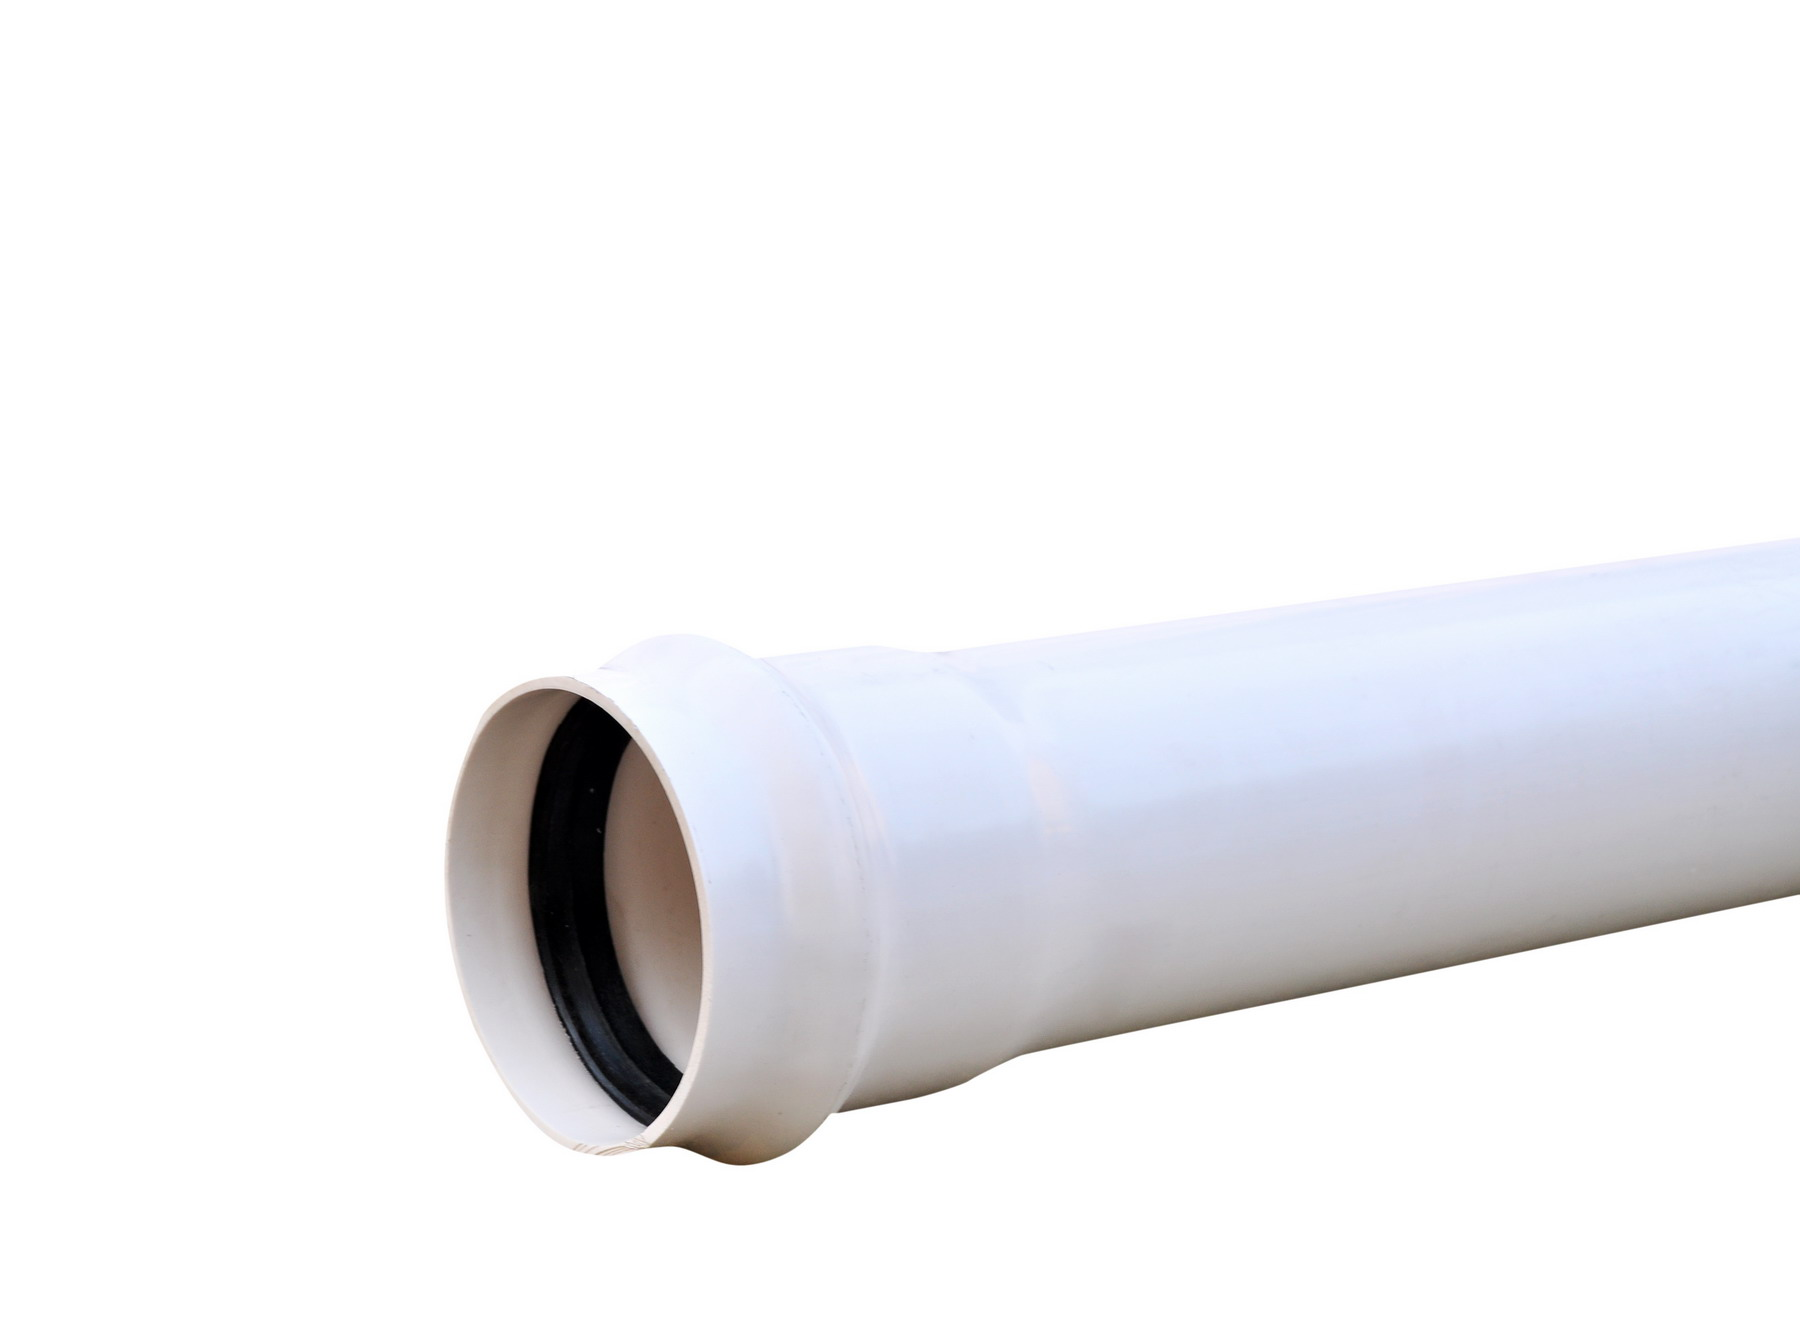 Pvc Joints 4 Inch Sch 40 Pvc Pipe